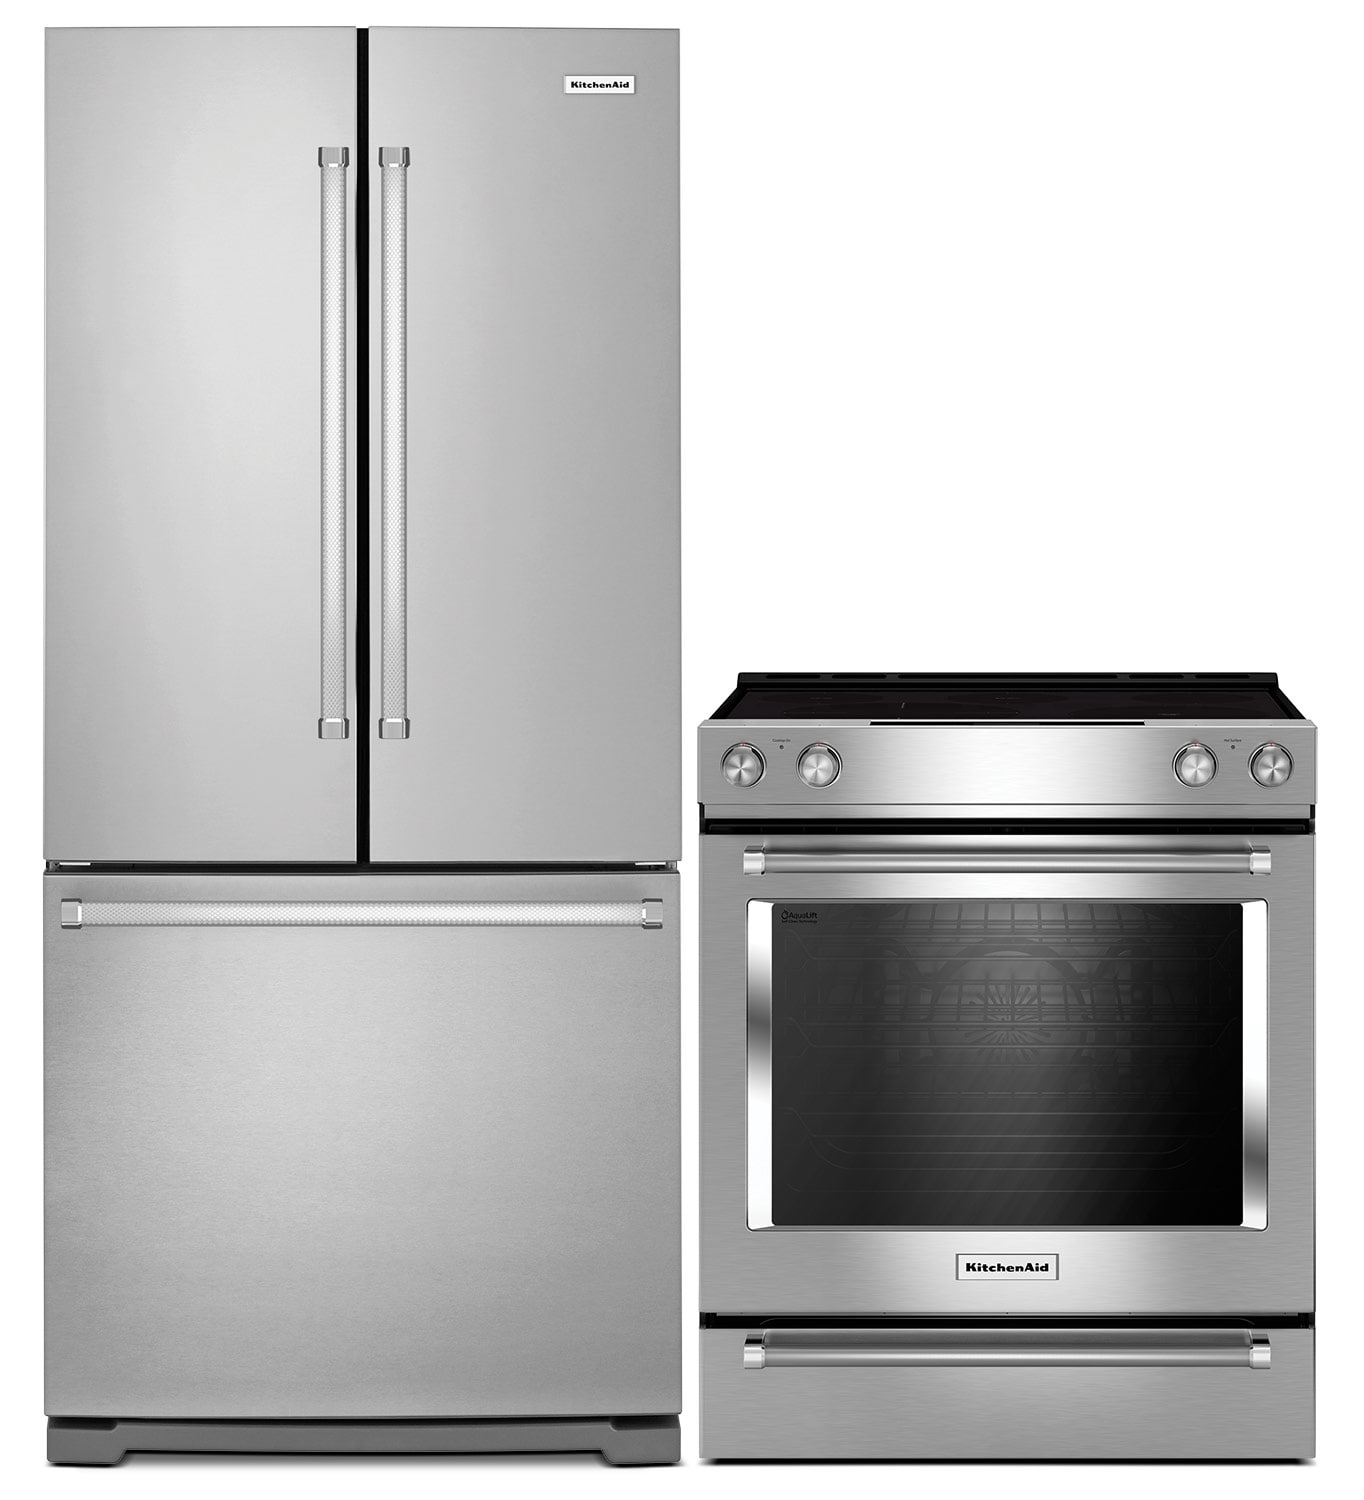 Cooking Products - KitchenAid 22.1 Cu. Ft. French-Door Refrigerator with Slide-In Electric Range - Stainless Steel